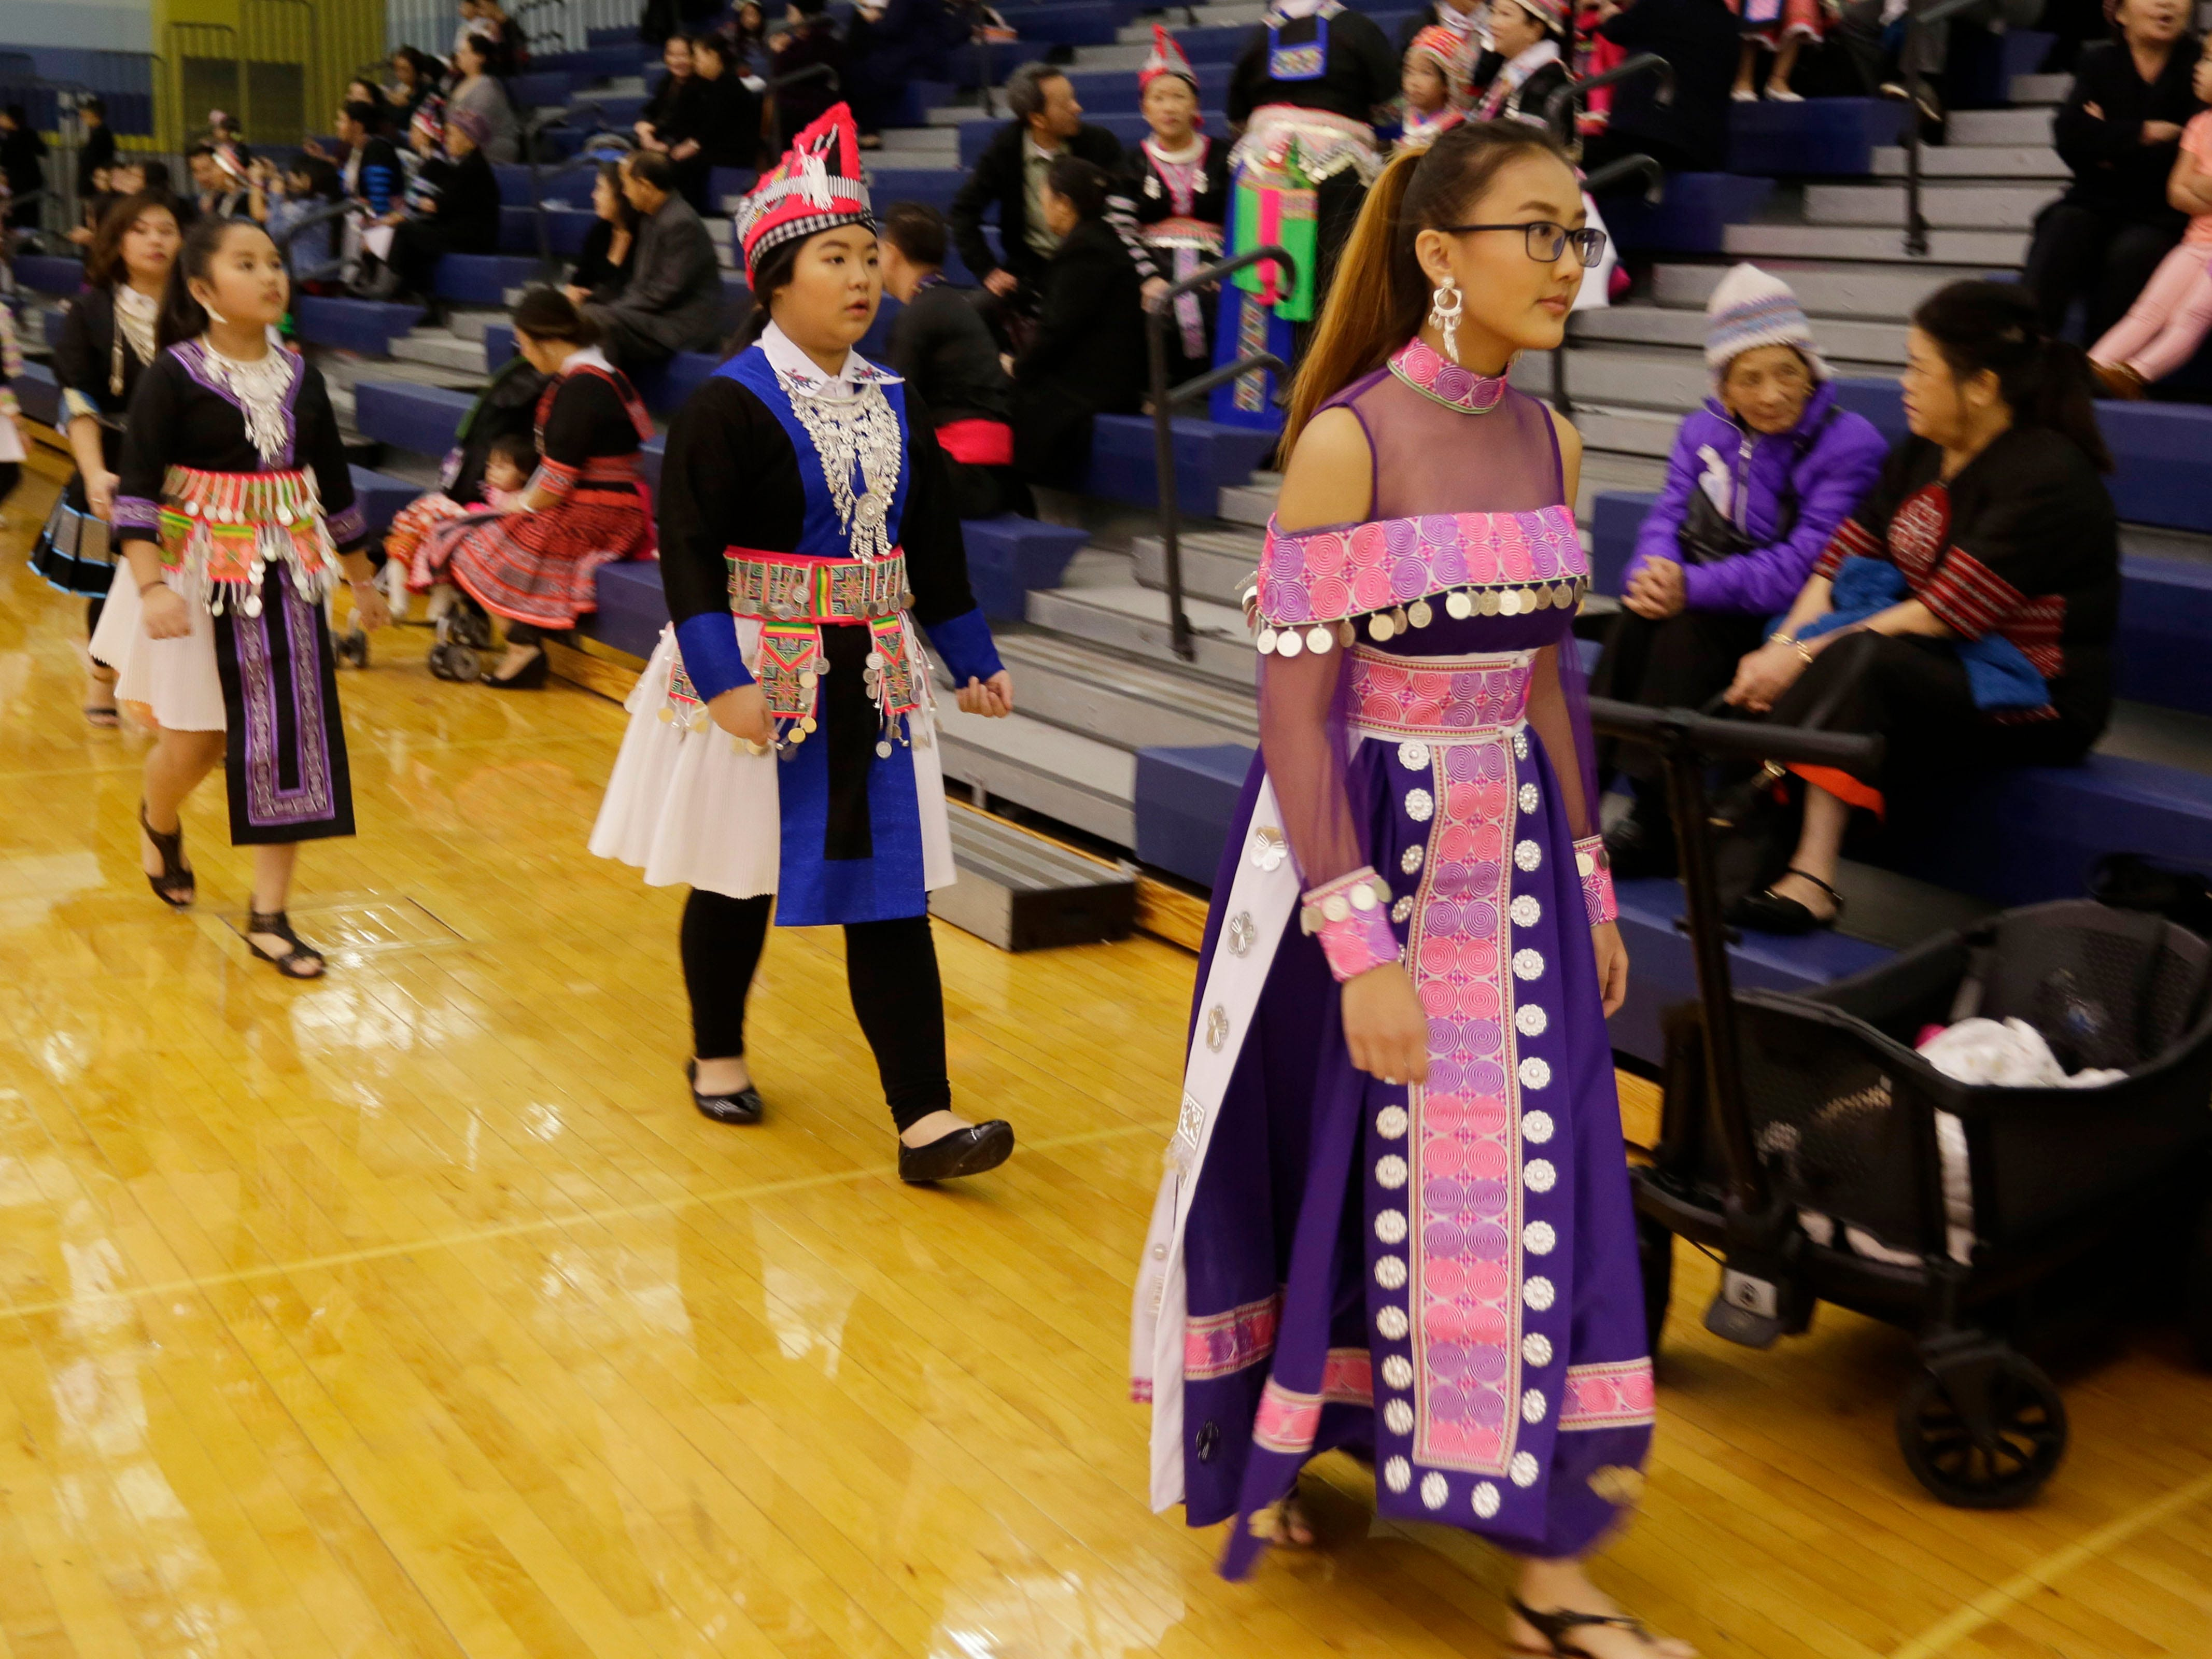 Hmong fashion contestants walk by the crowd at Sheboygan North High School, Saturday, November 24, 2018, in Sheboygan, Wis.